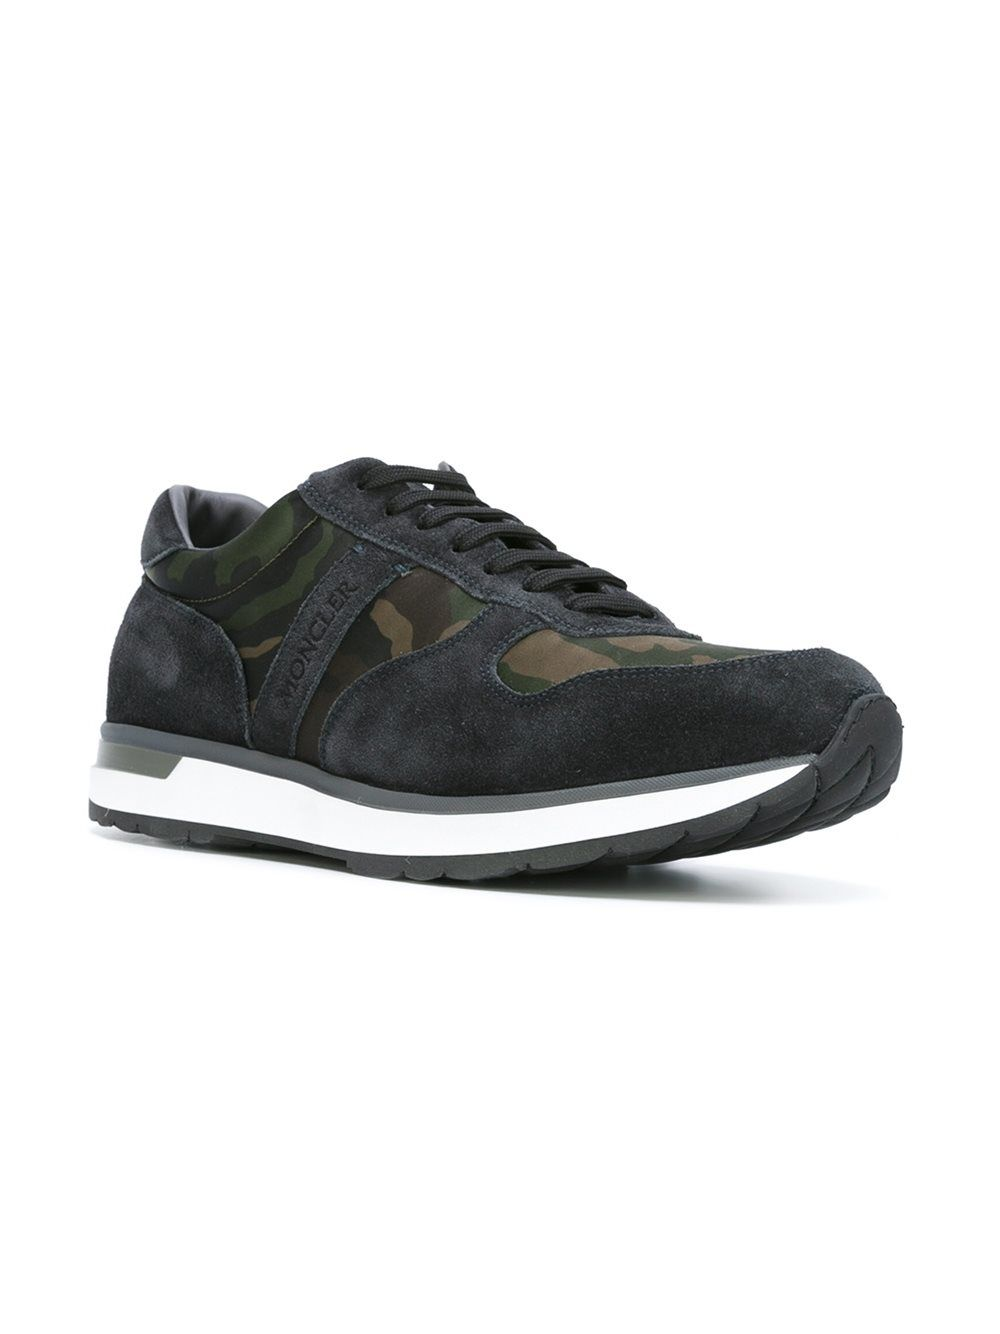 #moncler #men #camouflage #sneakers #newin #style www.jofre.